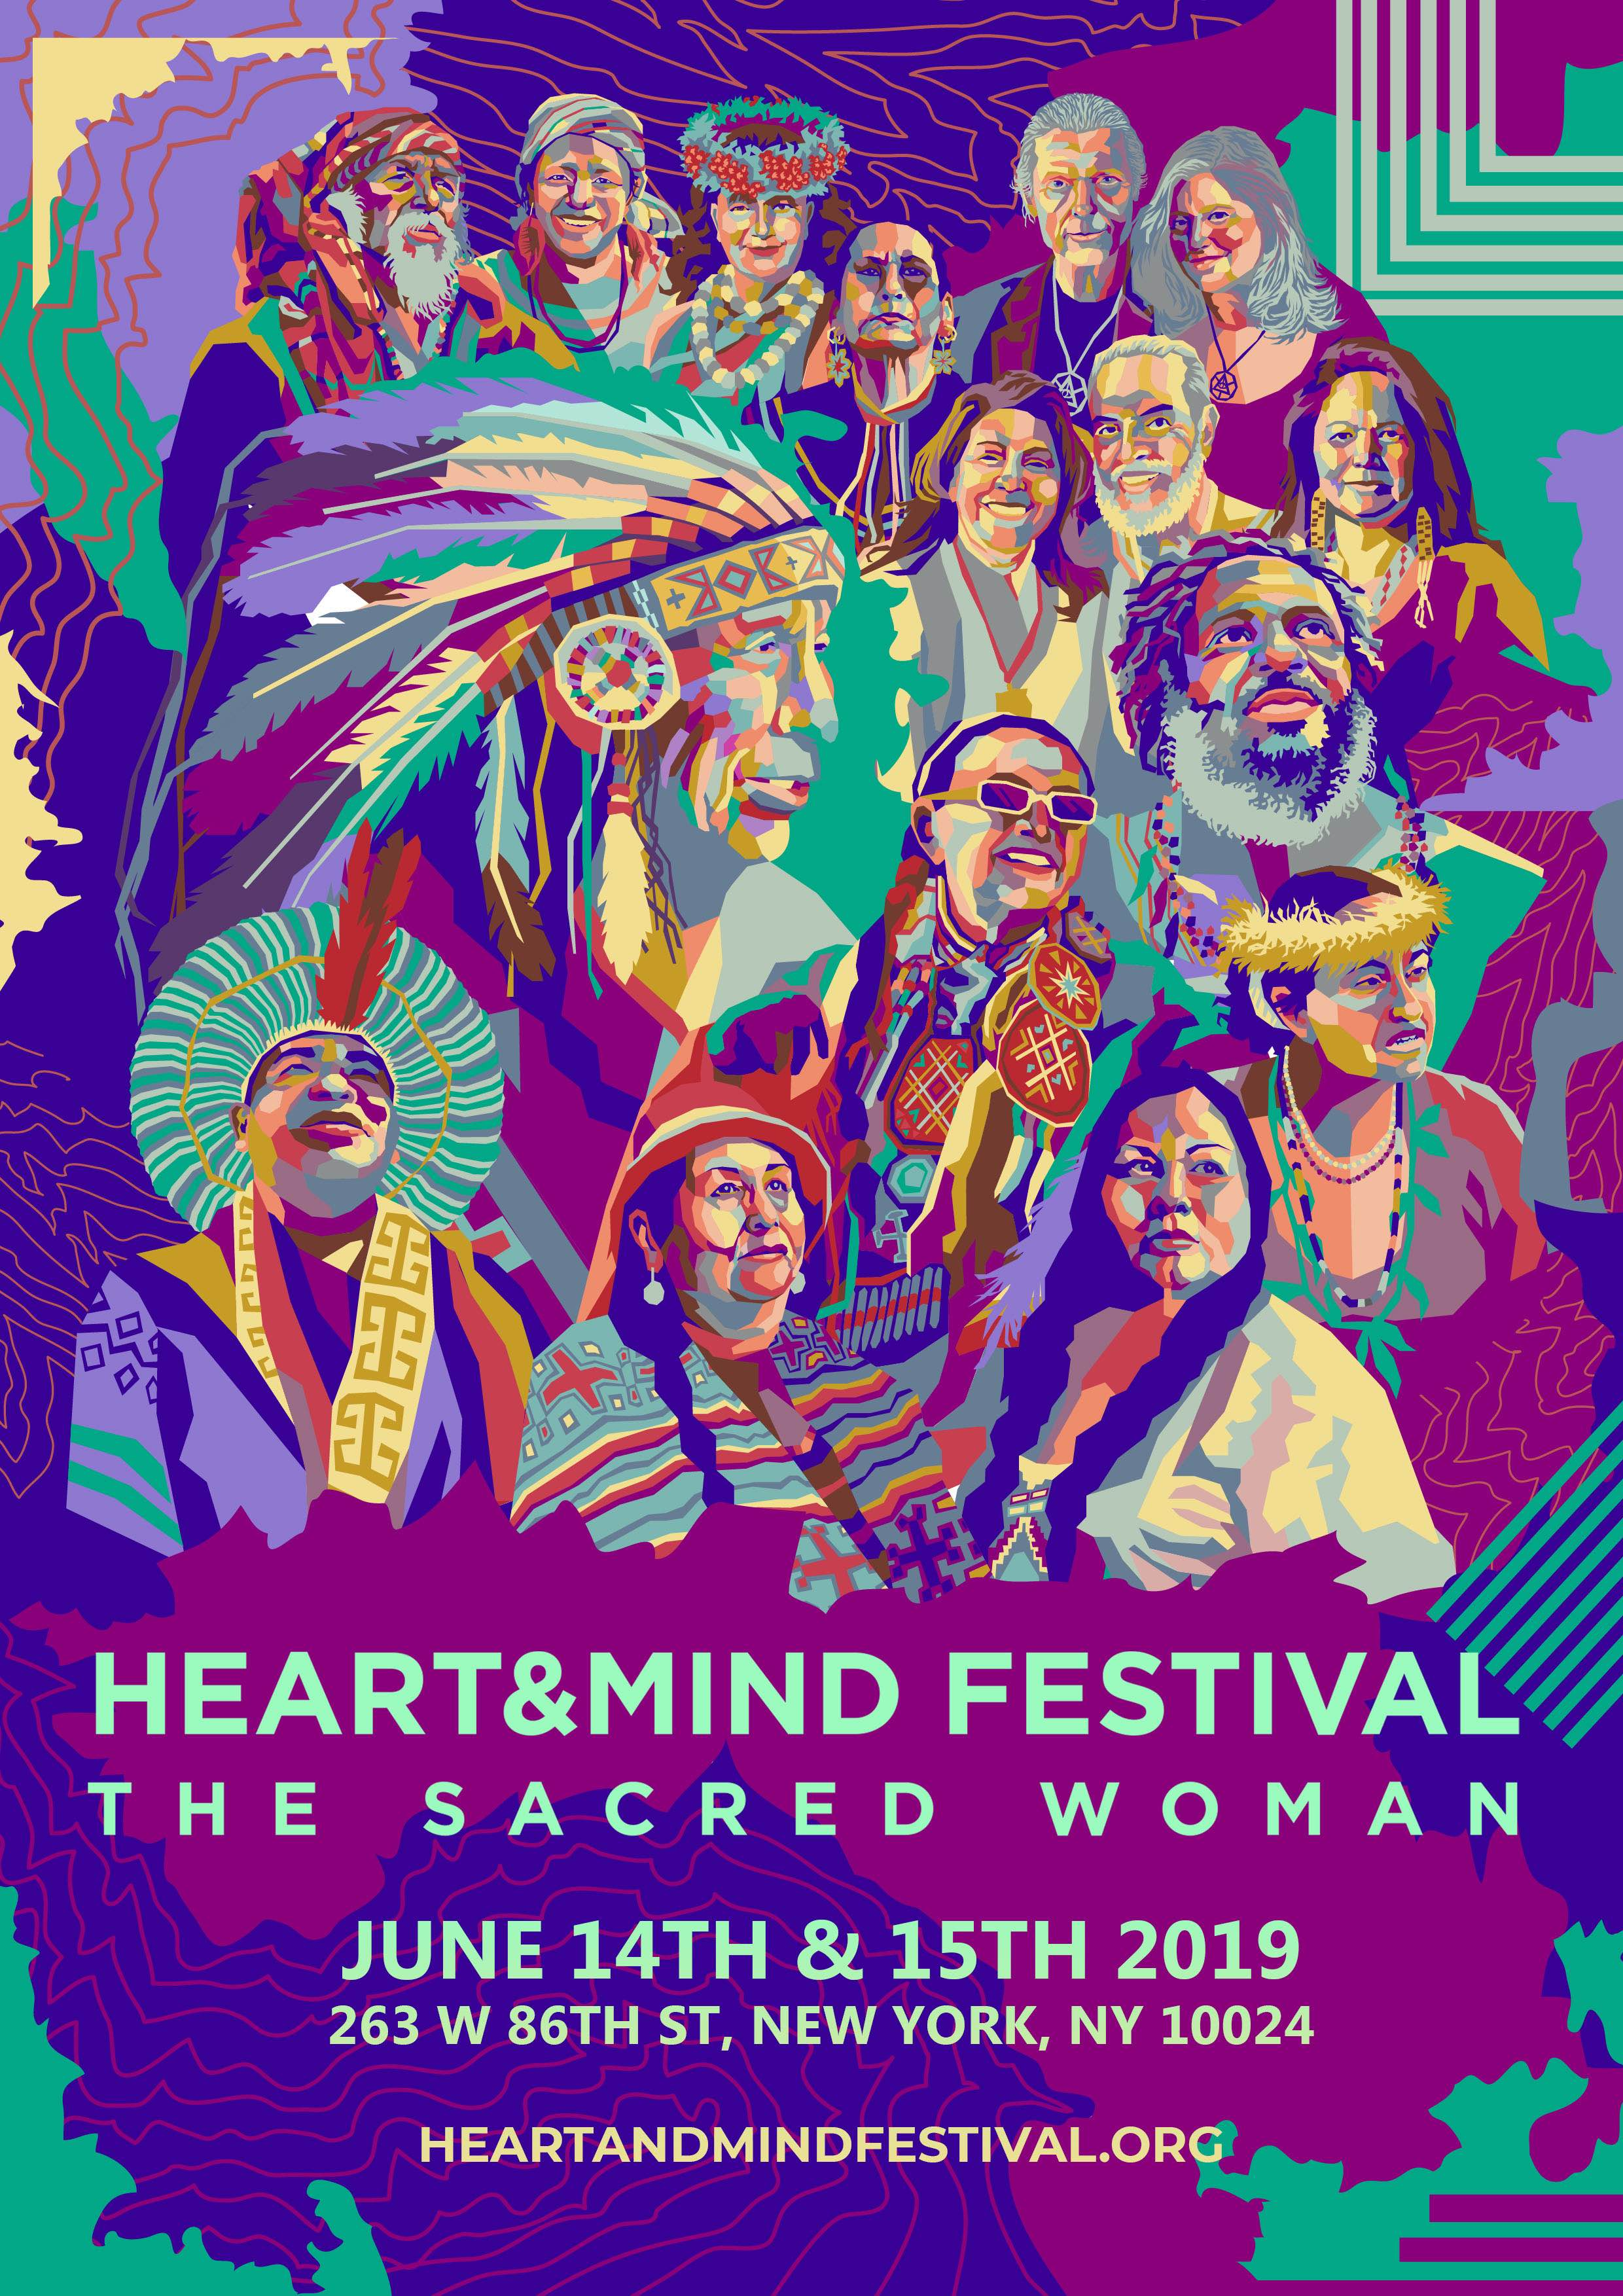 Heart and Mind Festival presents: The Sacred Woman, June 14